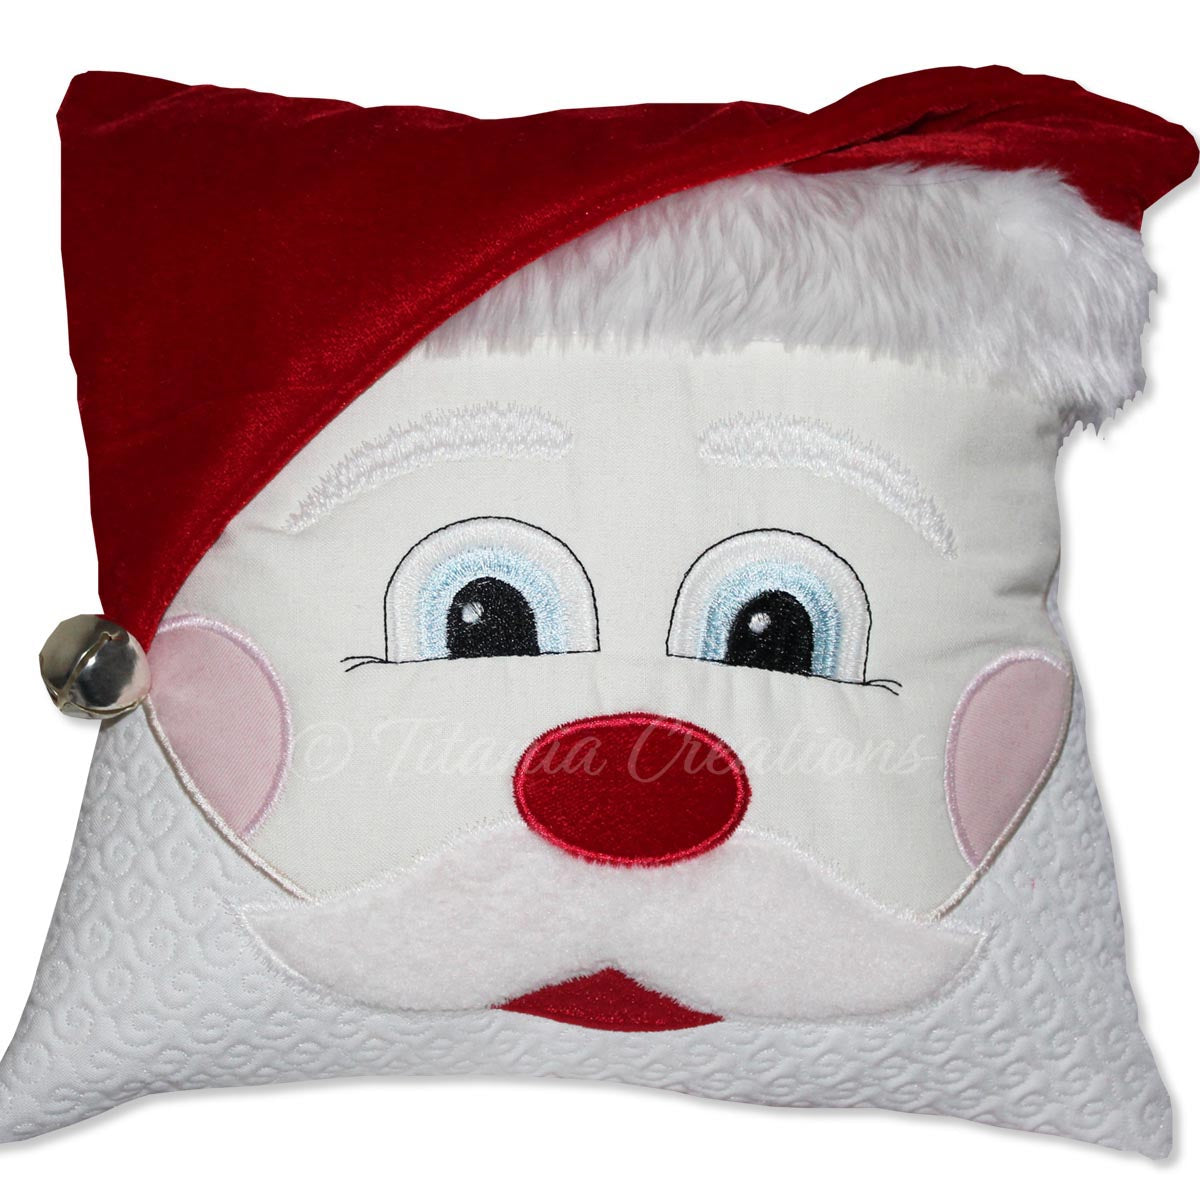 Santa Pillow Project 8x12